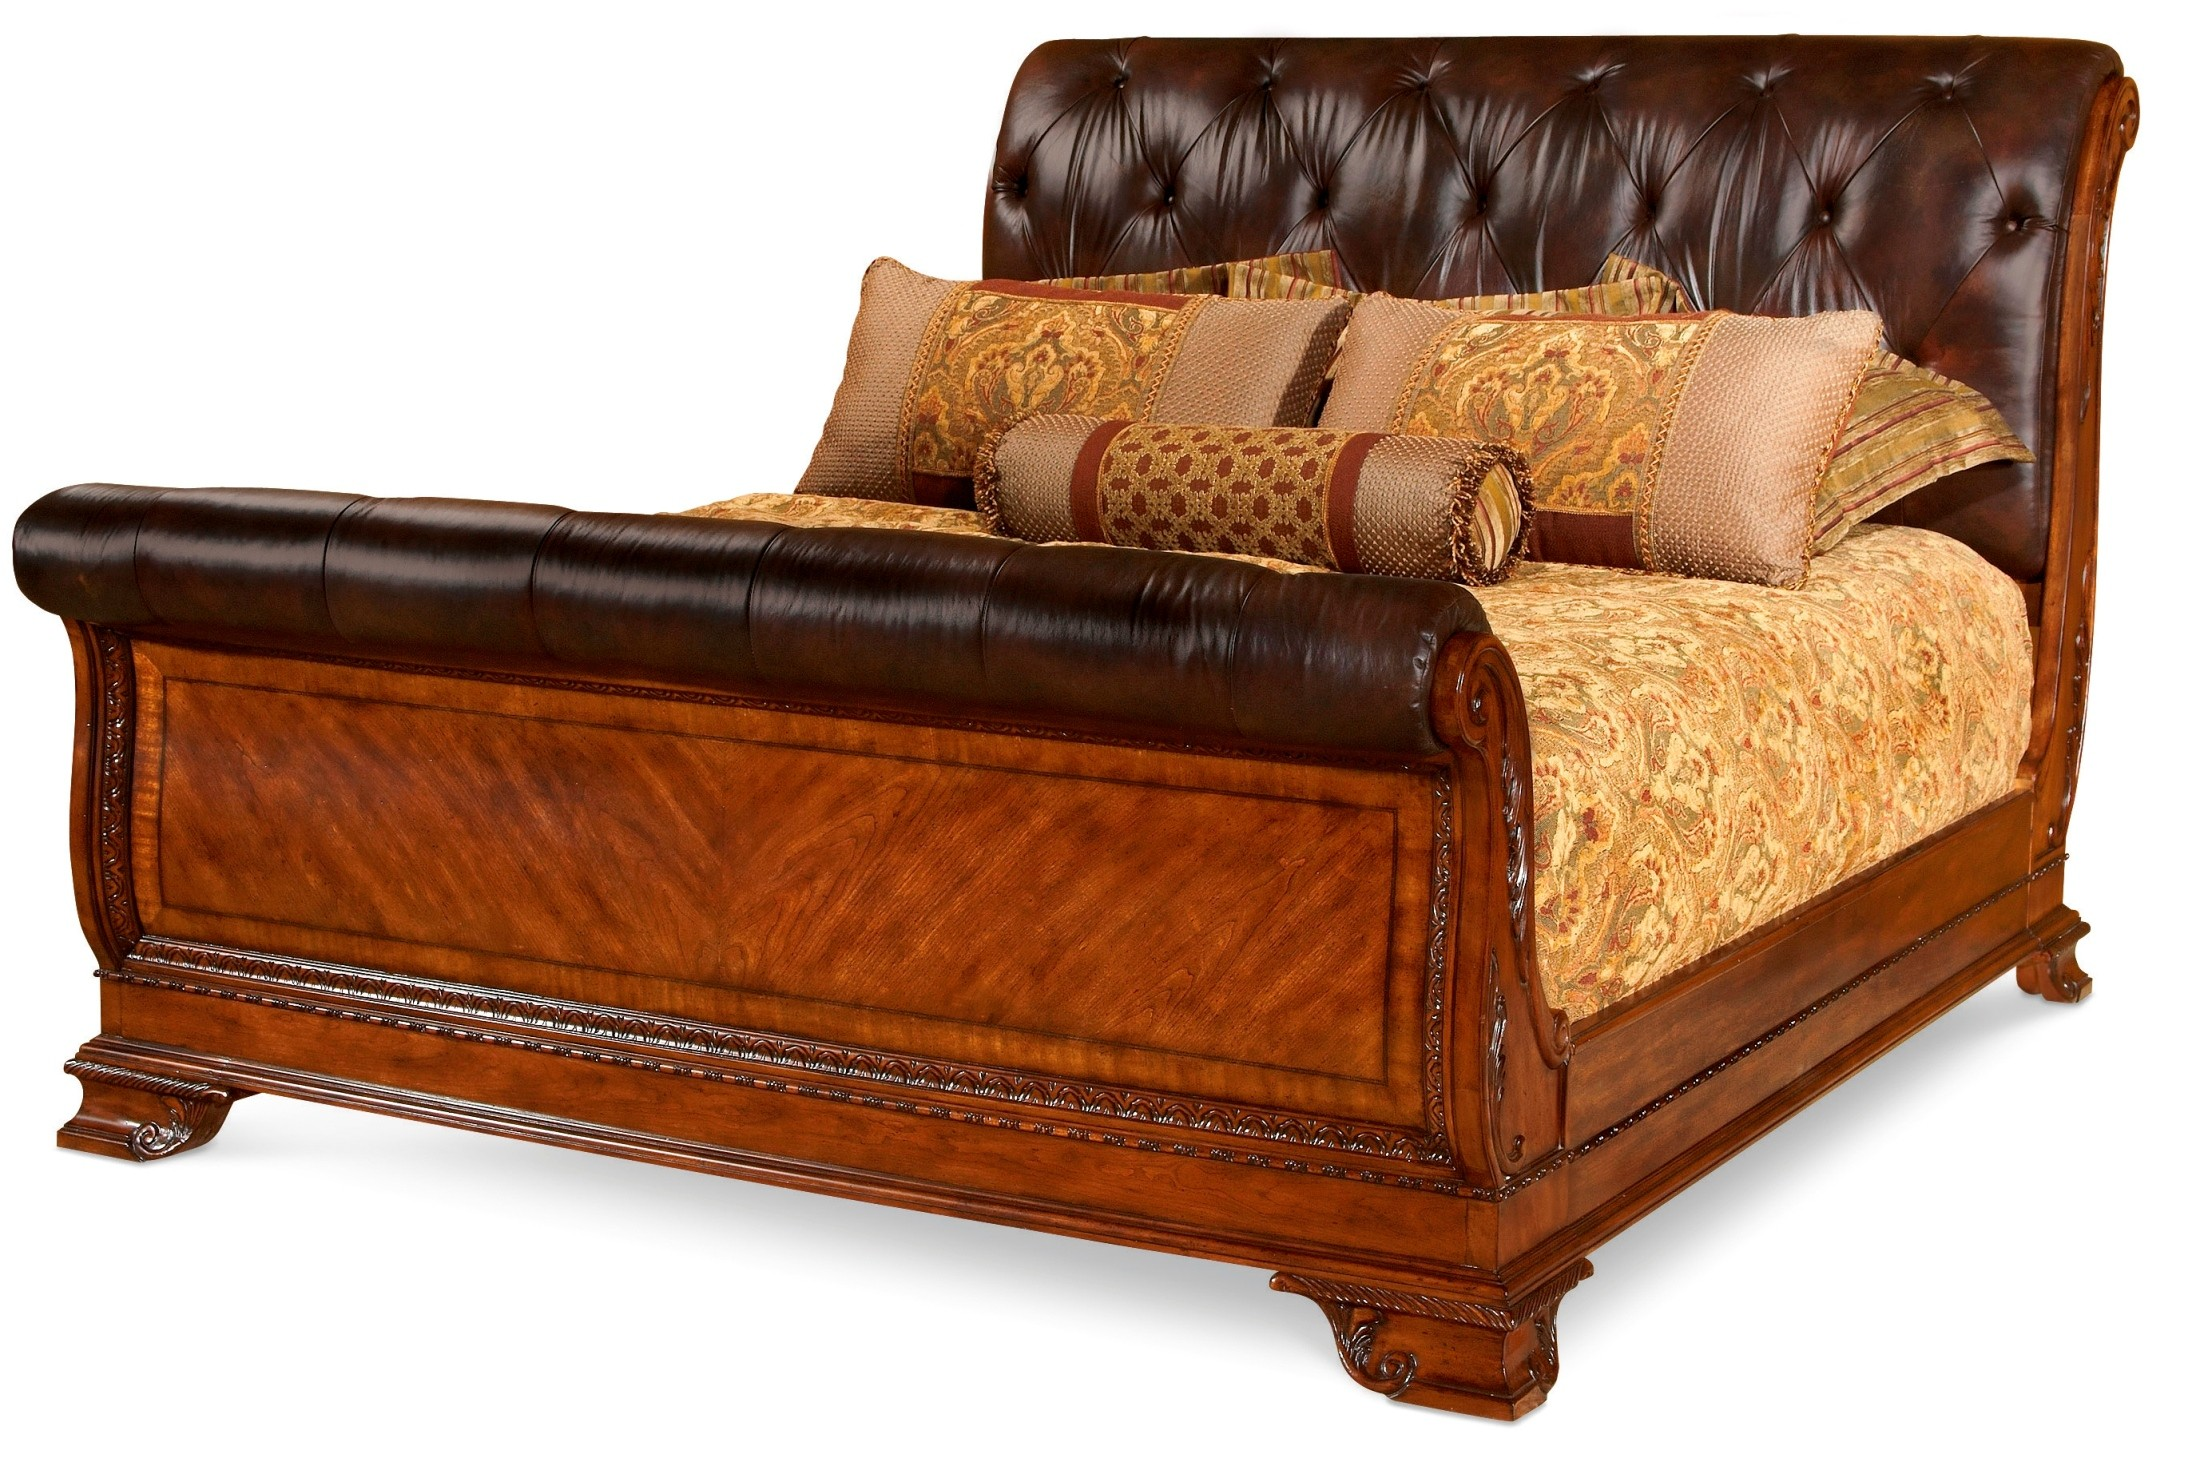 Leather And Wood King Sized Sleigh Bed African Teens Porn